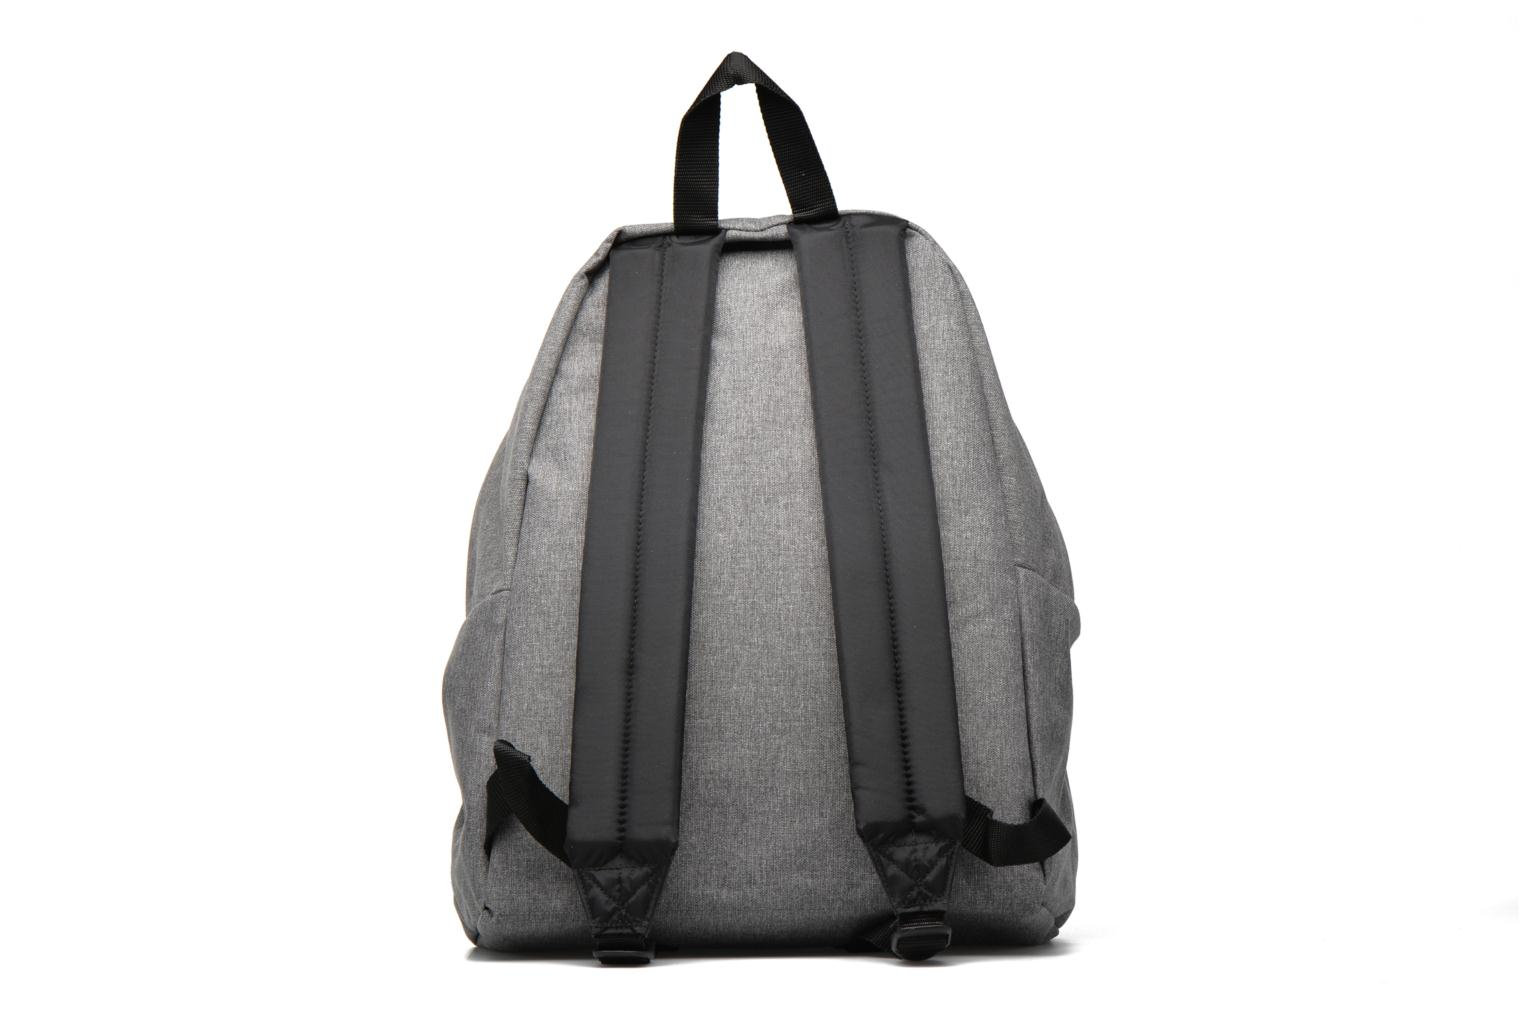 PACK'R toile dos Eastpak à PADDED Sac Sunday Grey fTqwx87g